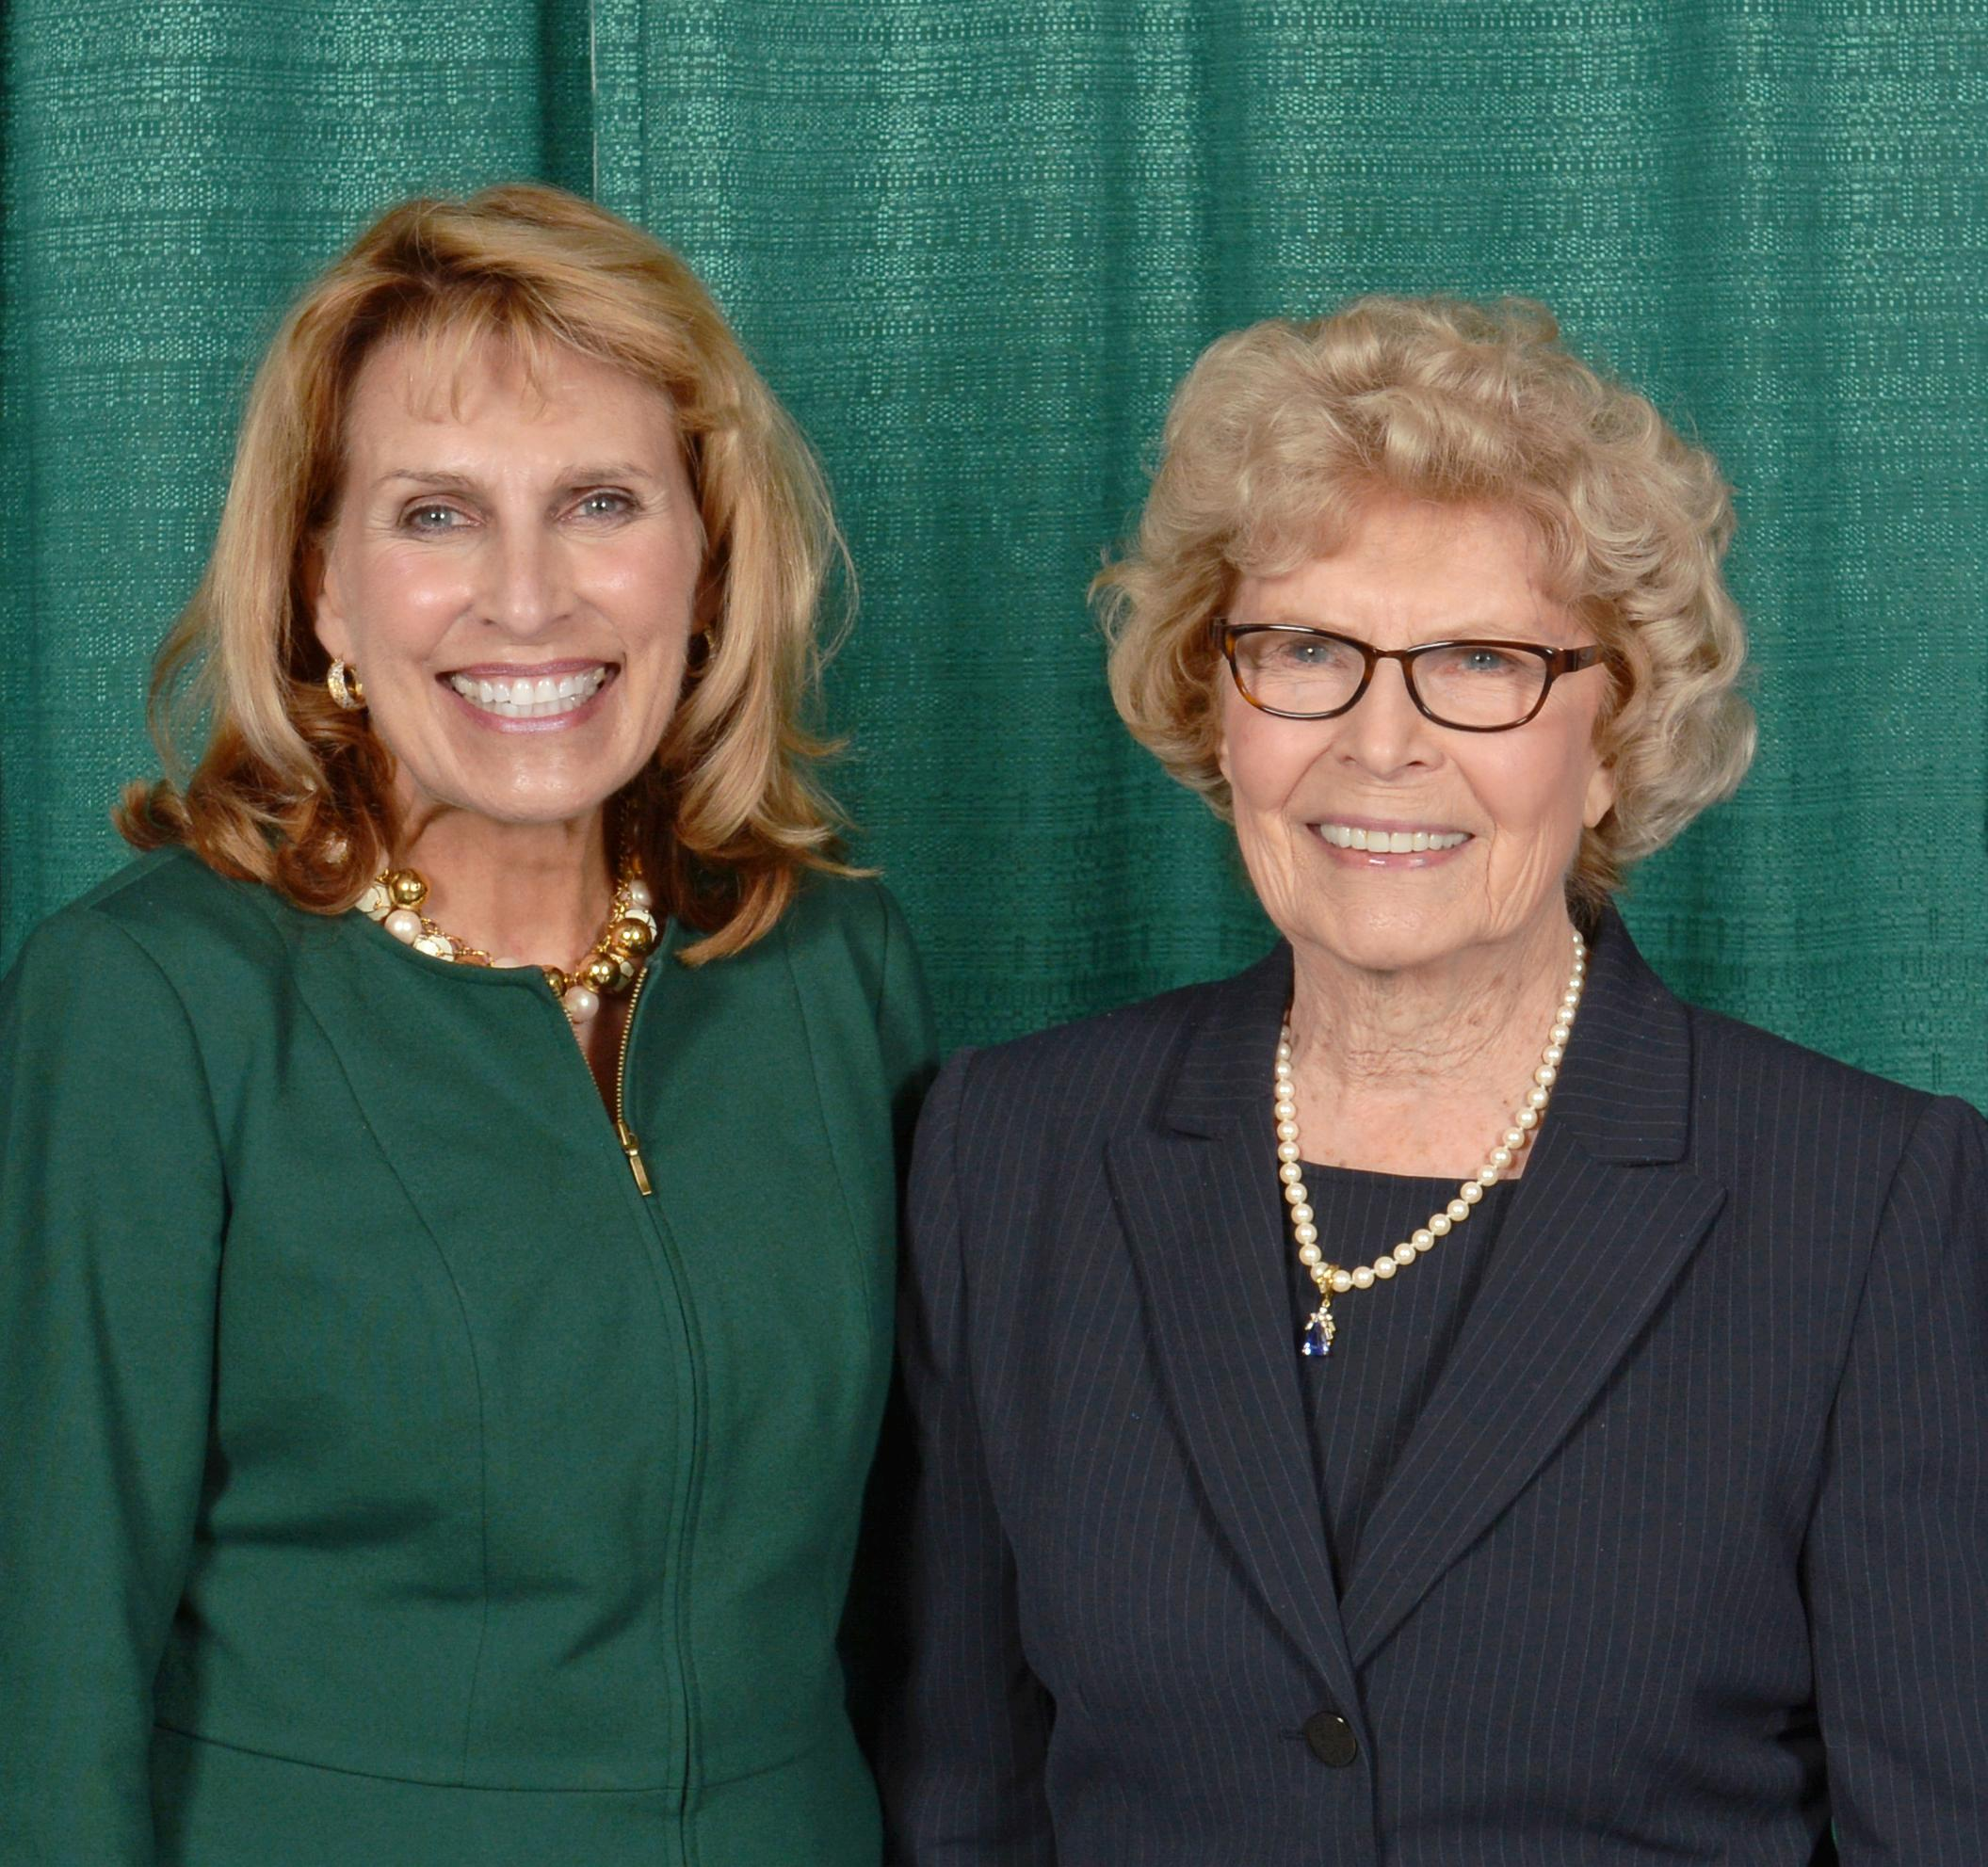 SUNY Oswego President Deborah F. Stanley and Dr. Barbara Shineman at the dedication on Oct. 4, 2013, of the Richard S. Shineman Center for Science, Engineering and Innovation.